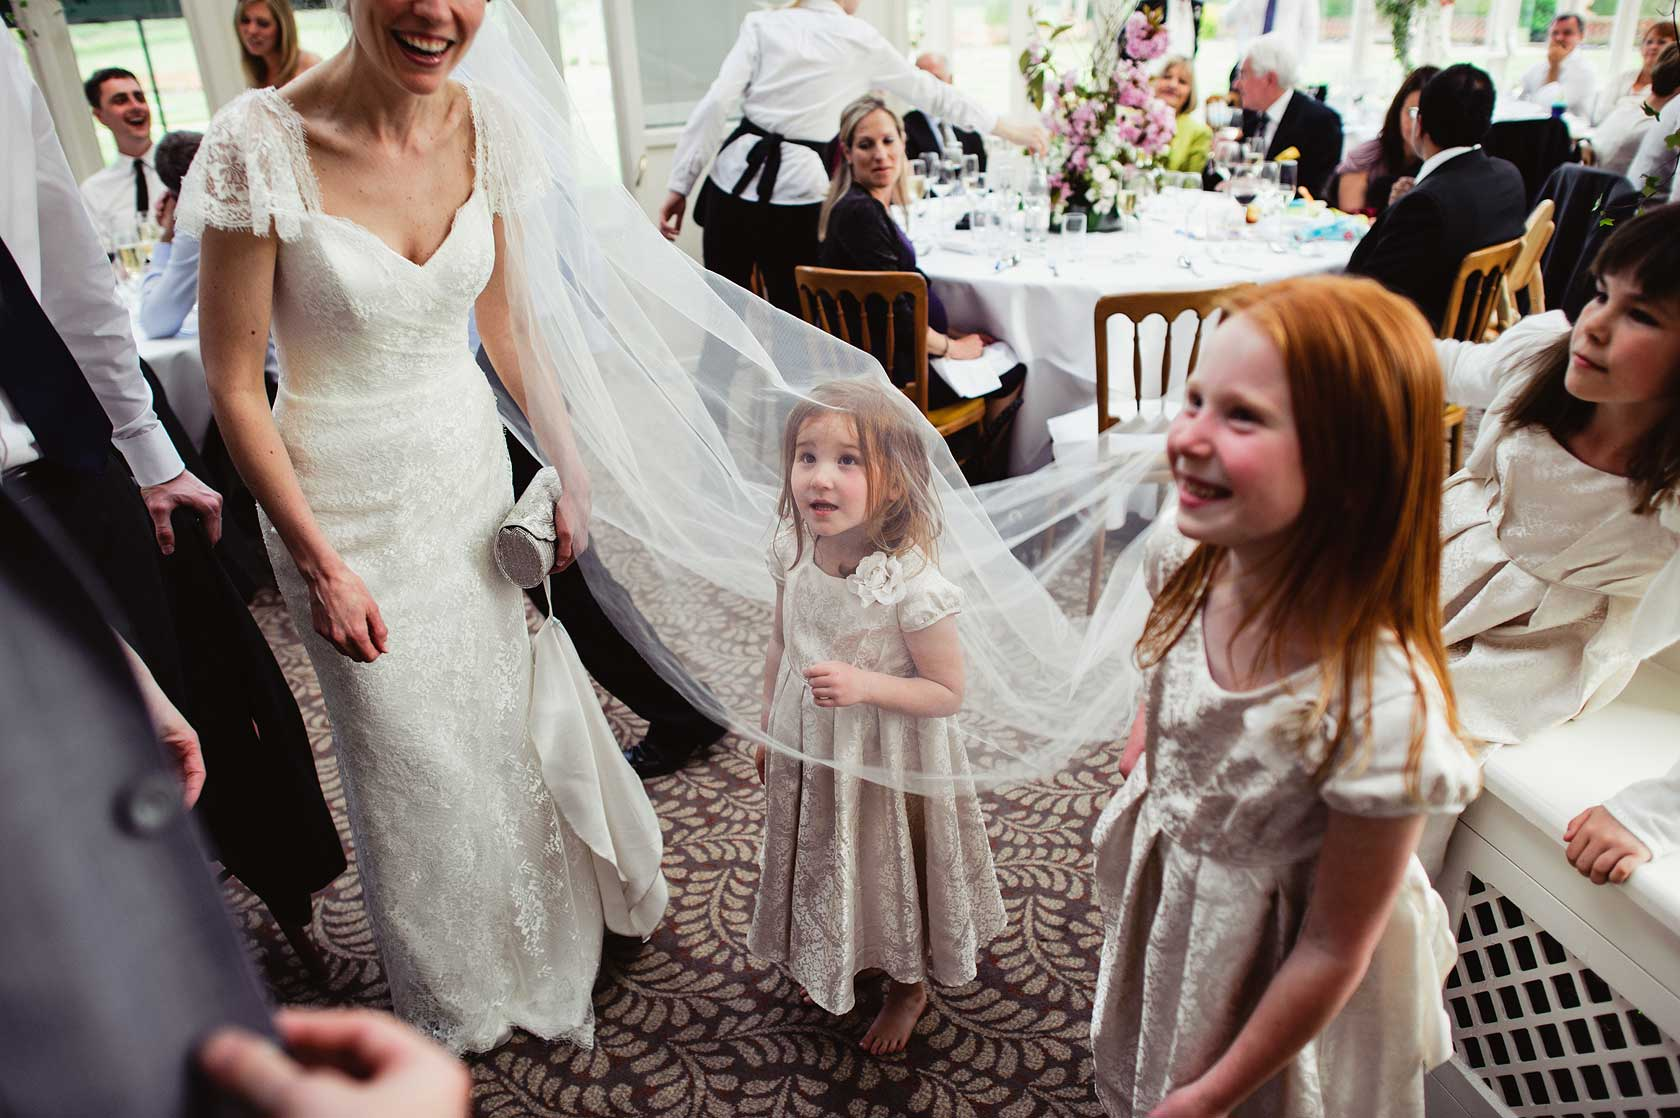 Reportage Wedding Photography at The Elvetham Hotel